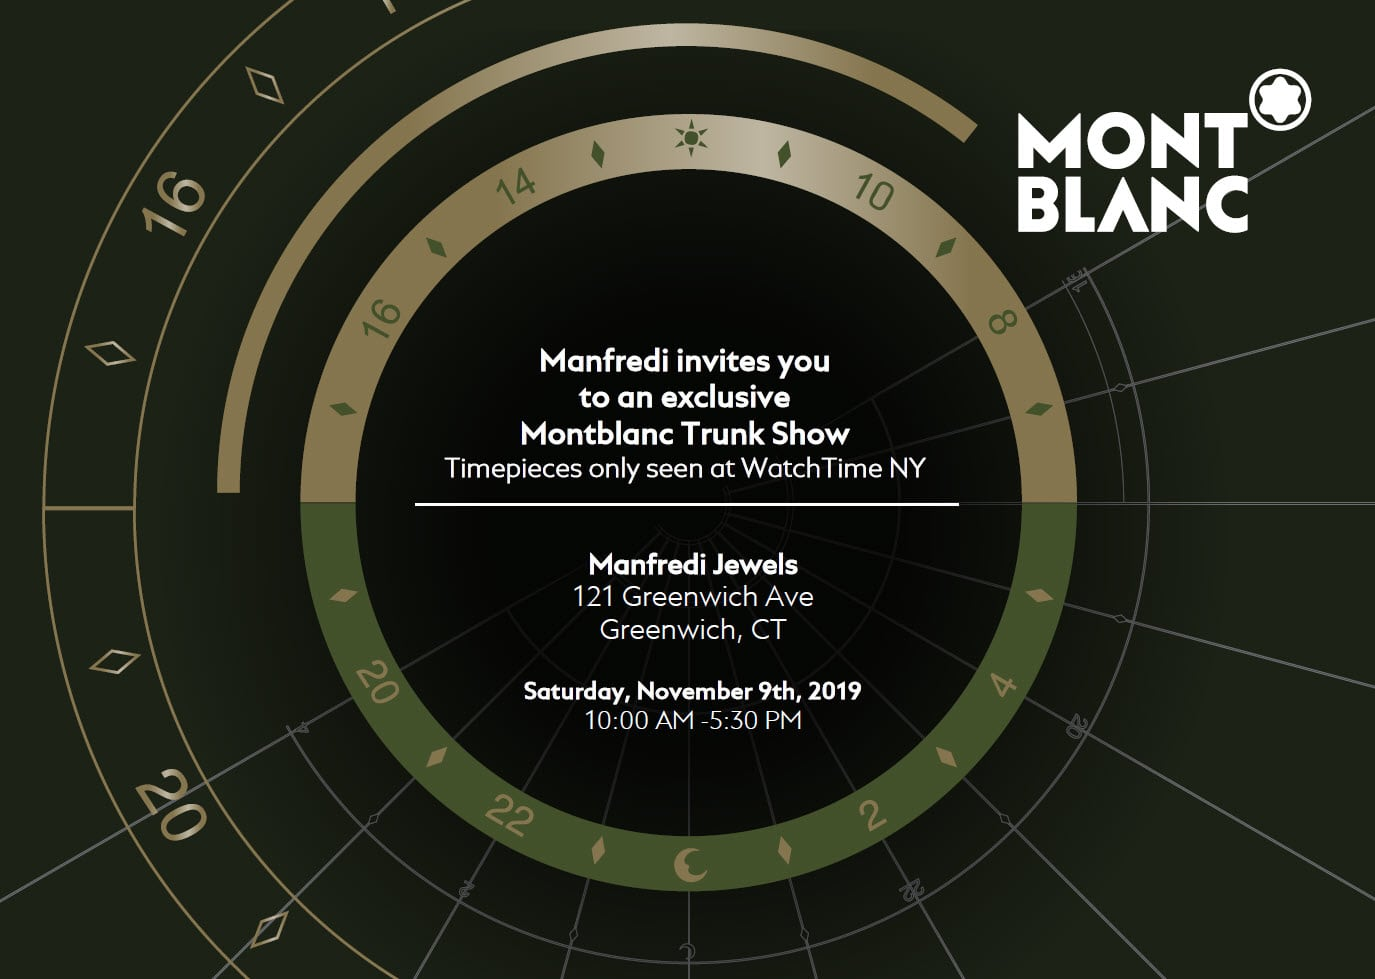 Montblanc Trunk Show at Manfredi Jewels